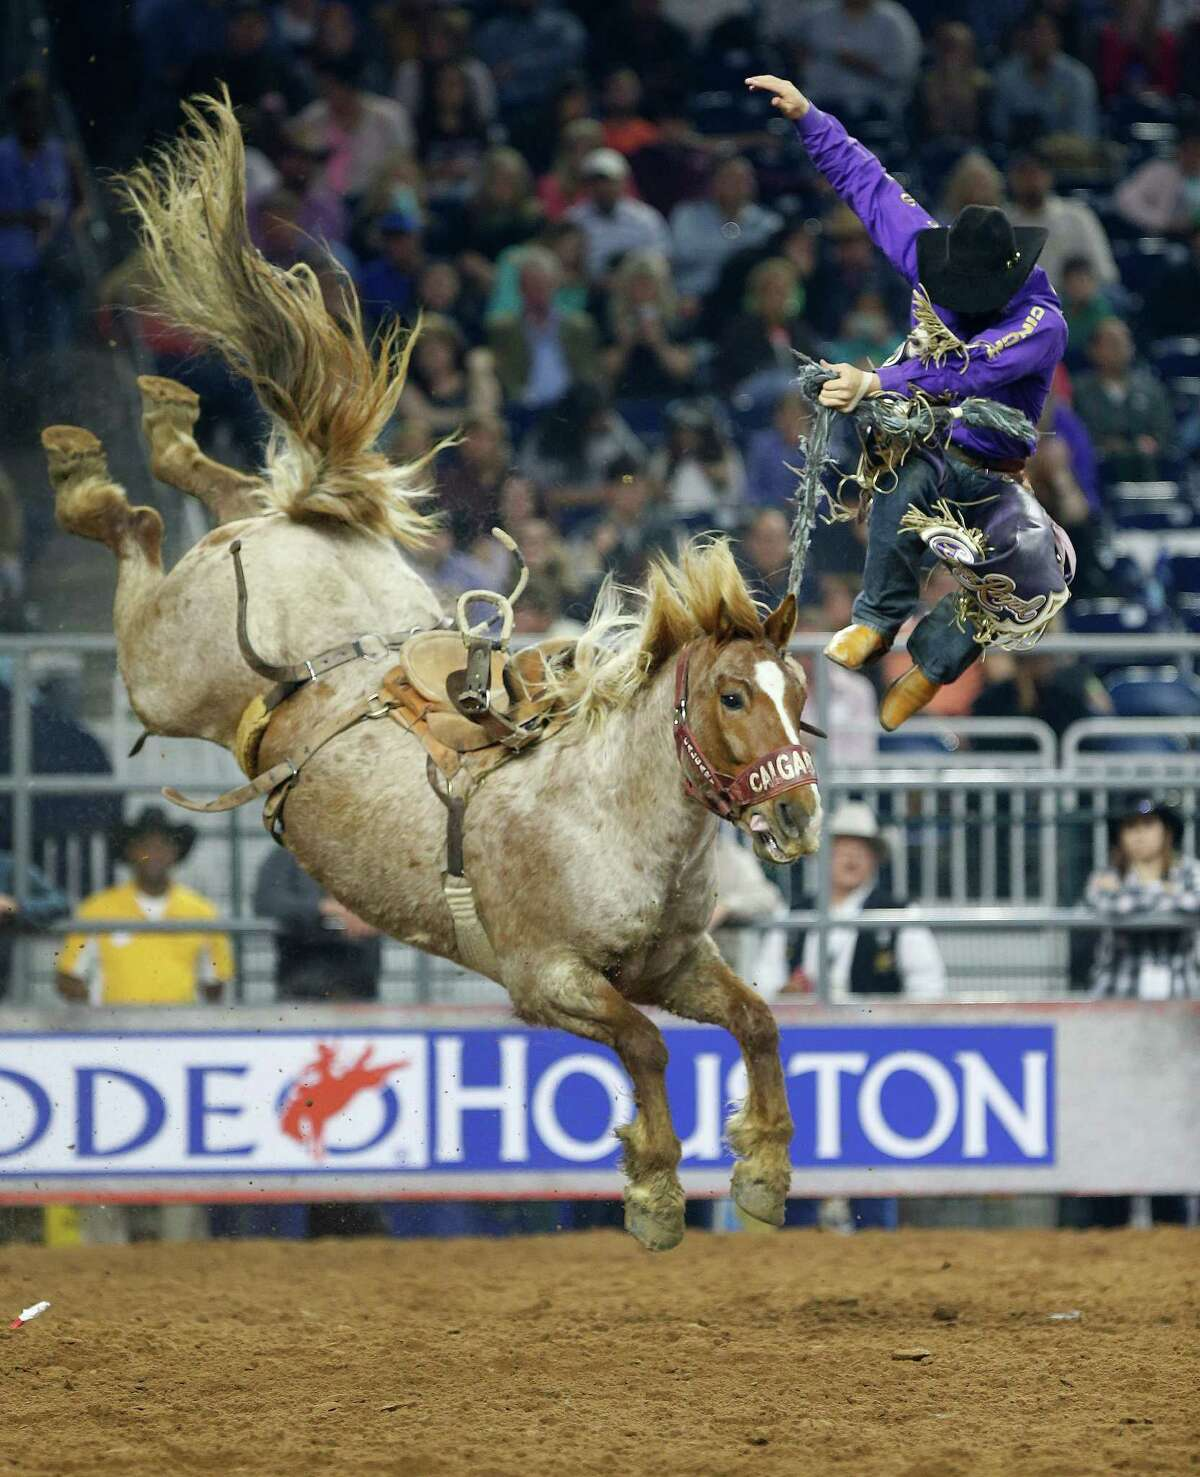 Tyler Corrington gets bucked off of Redon Acres during the championship round of the saddle bronc riding competition at the Houston Livestock Show and Rodeo at NRG Stadium, Saturday, March 21, 2015, in Houston.